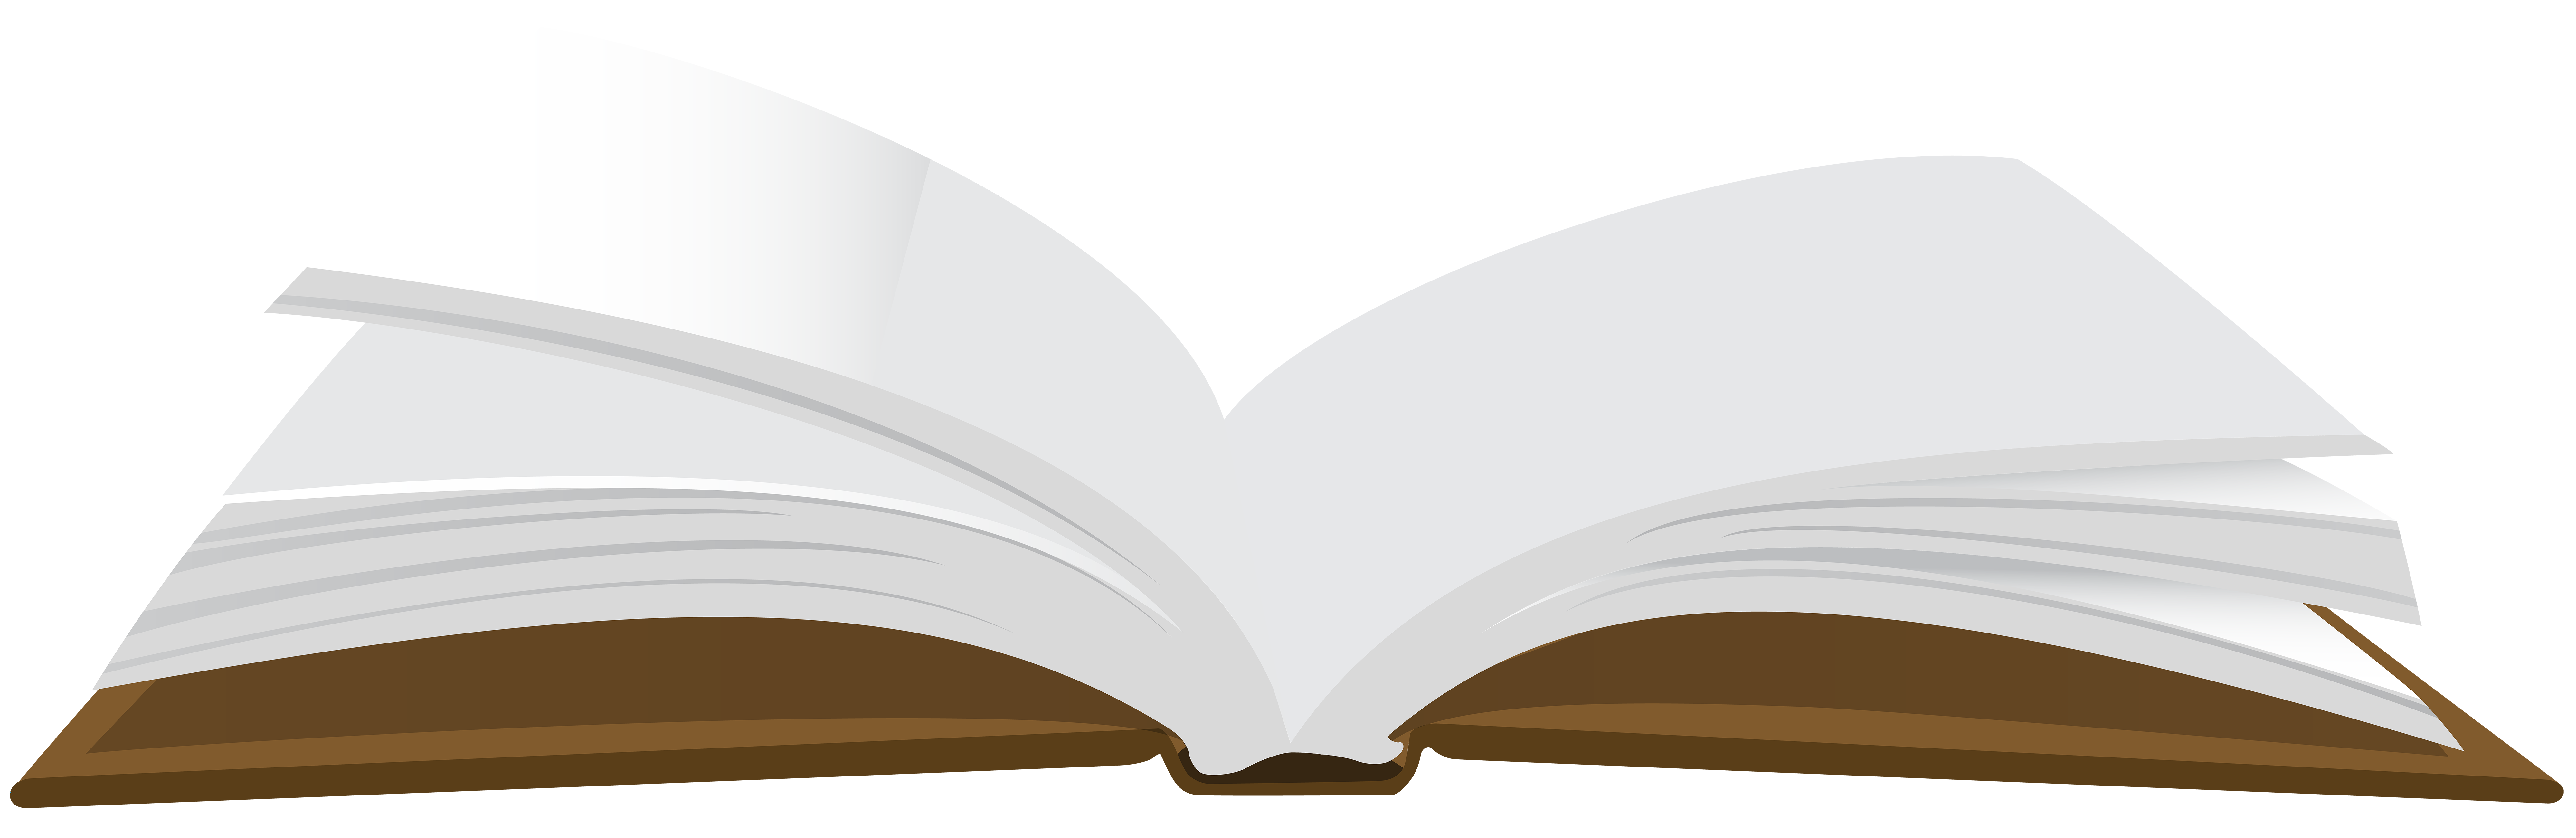 Book open png.